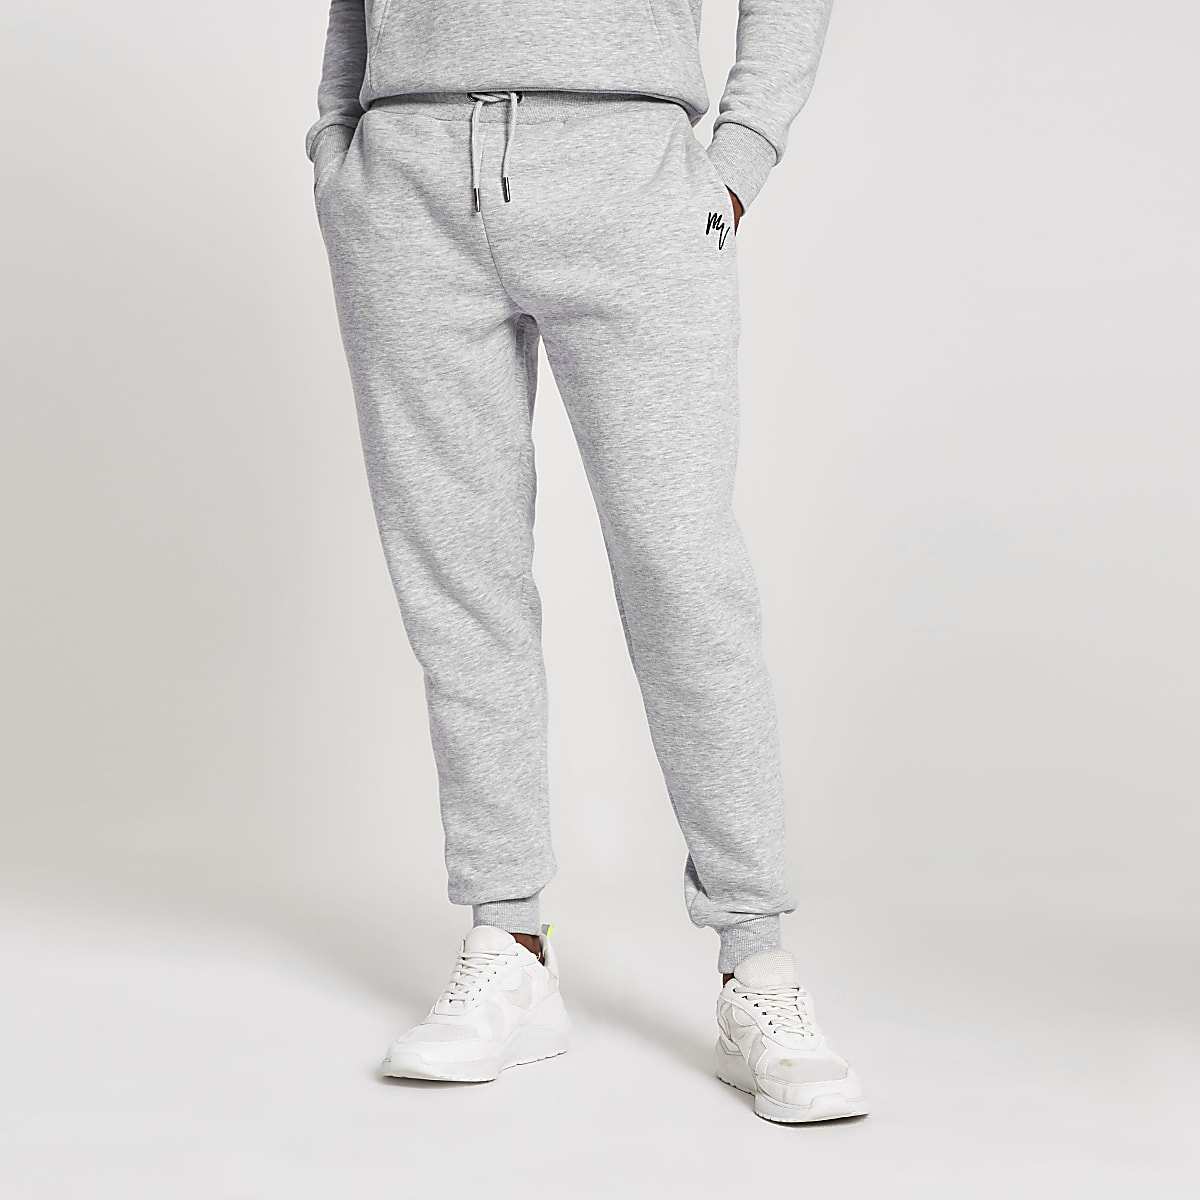 Maison Riviera grey slim fit joggers